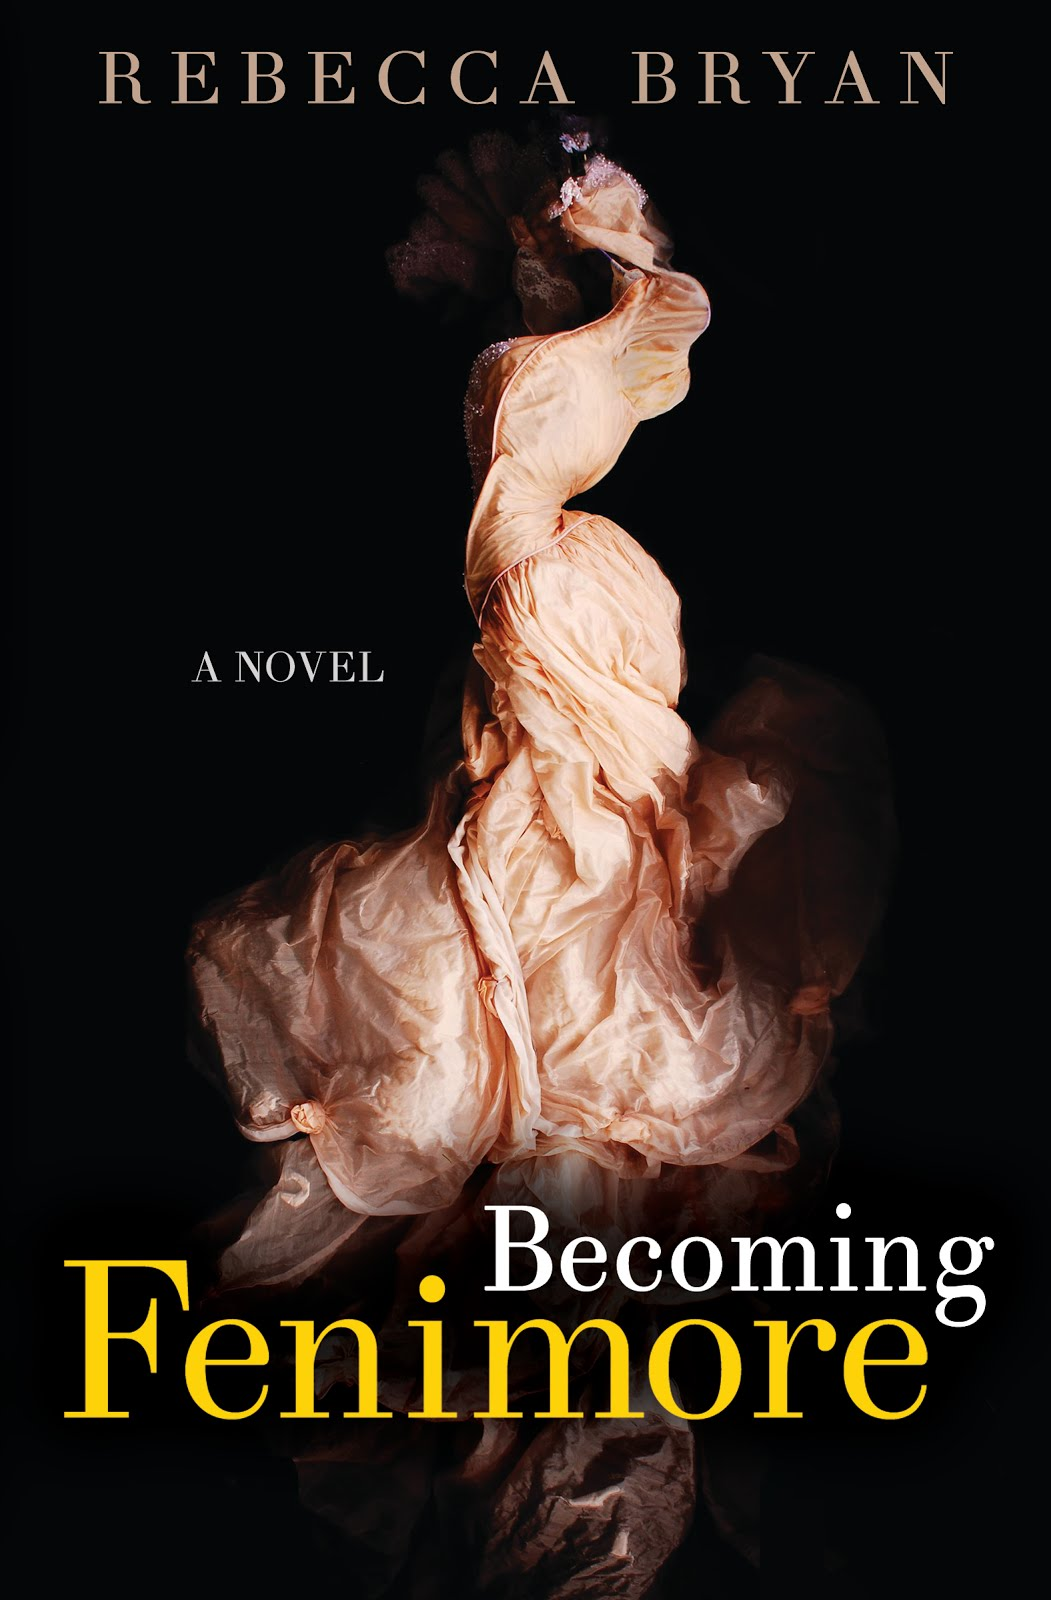 Buy Becoming Fenimore here!